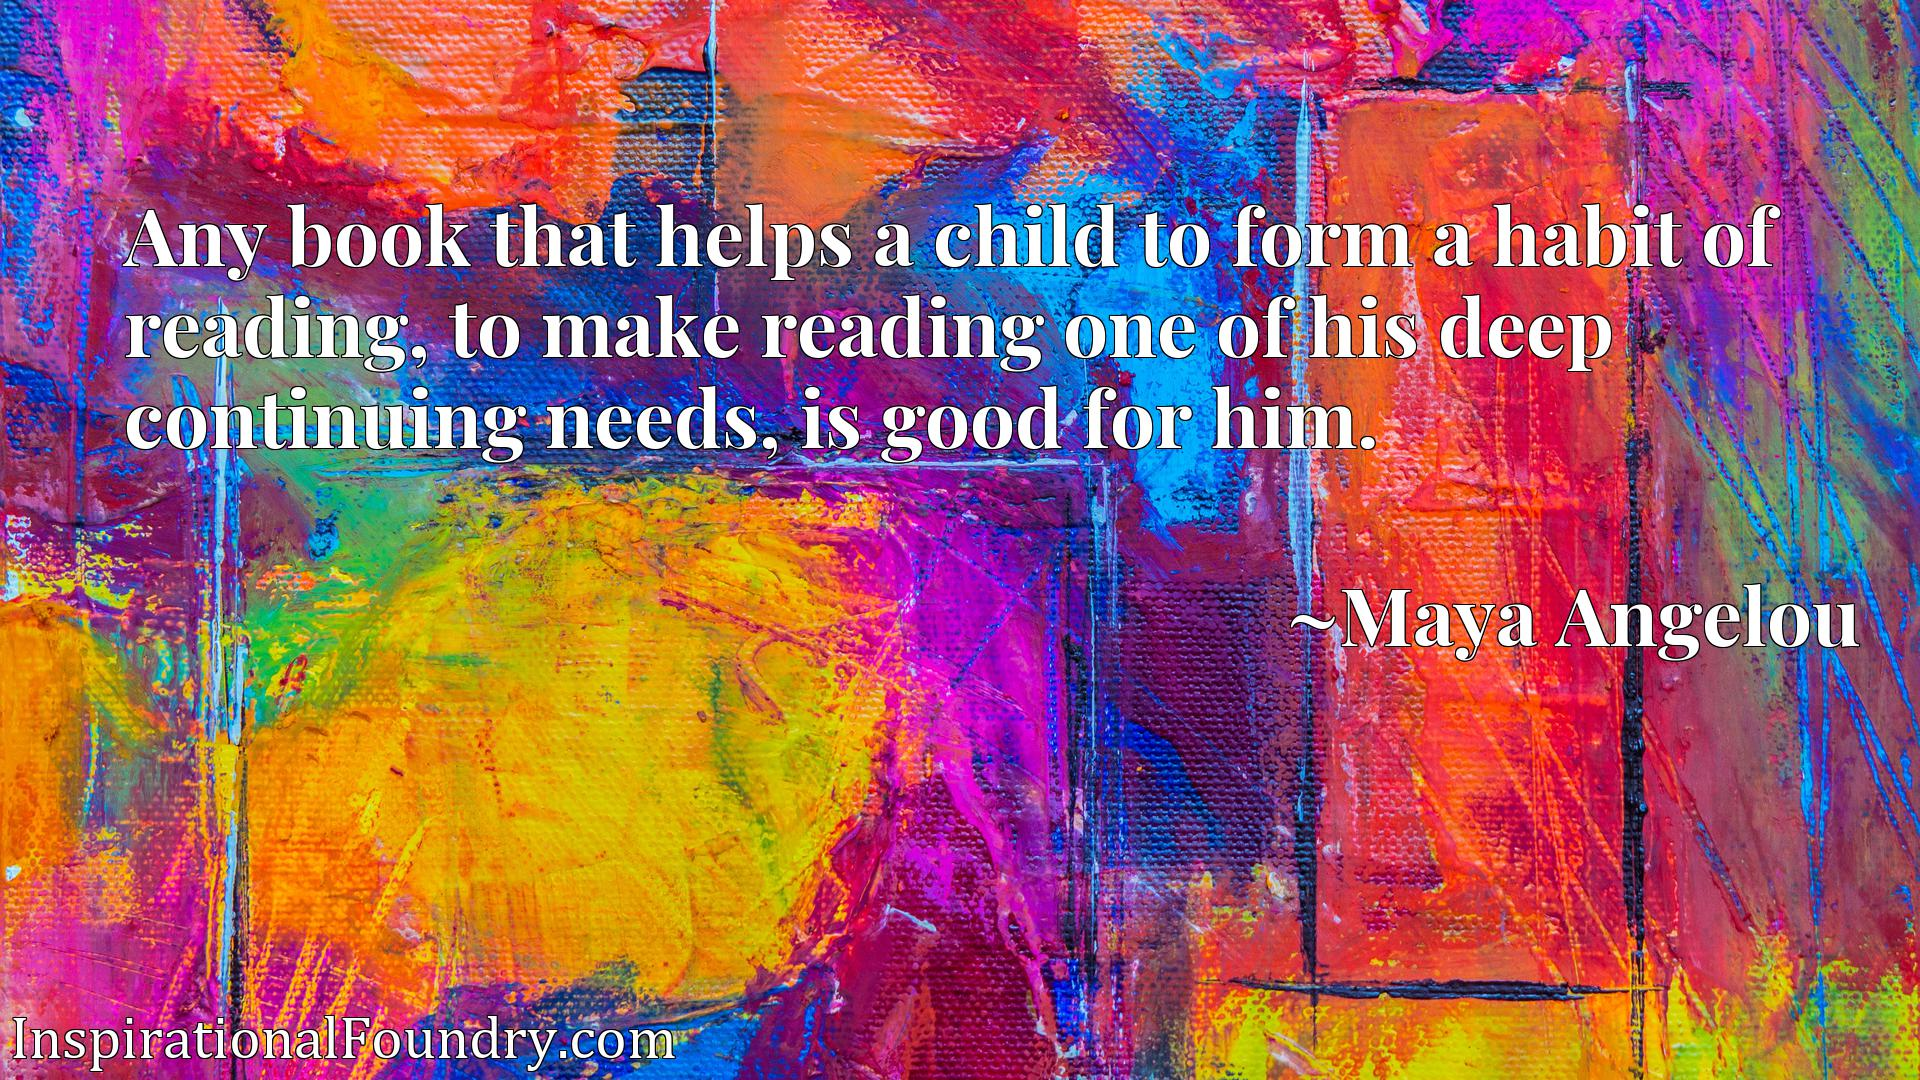 Any book that helps a child to form a habit of reading, to make reading one of his deep continuing needs, is good for him.